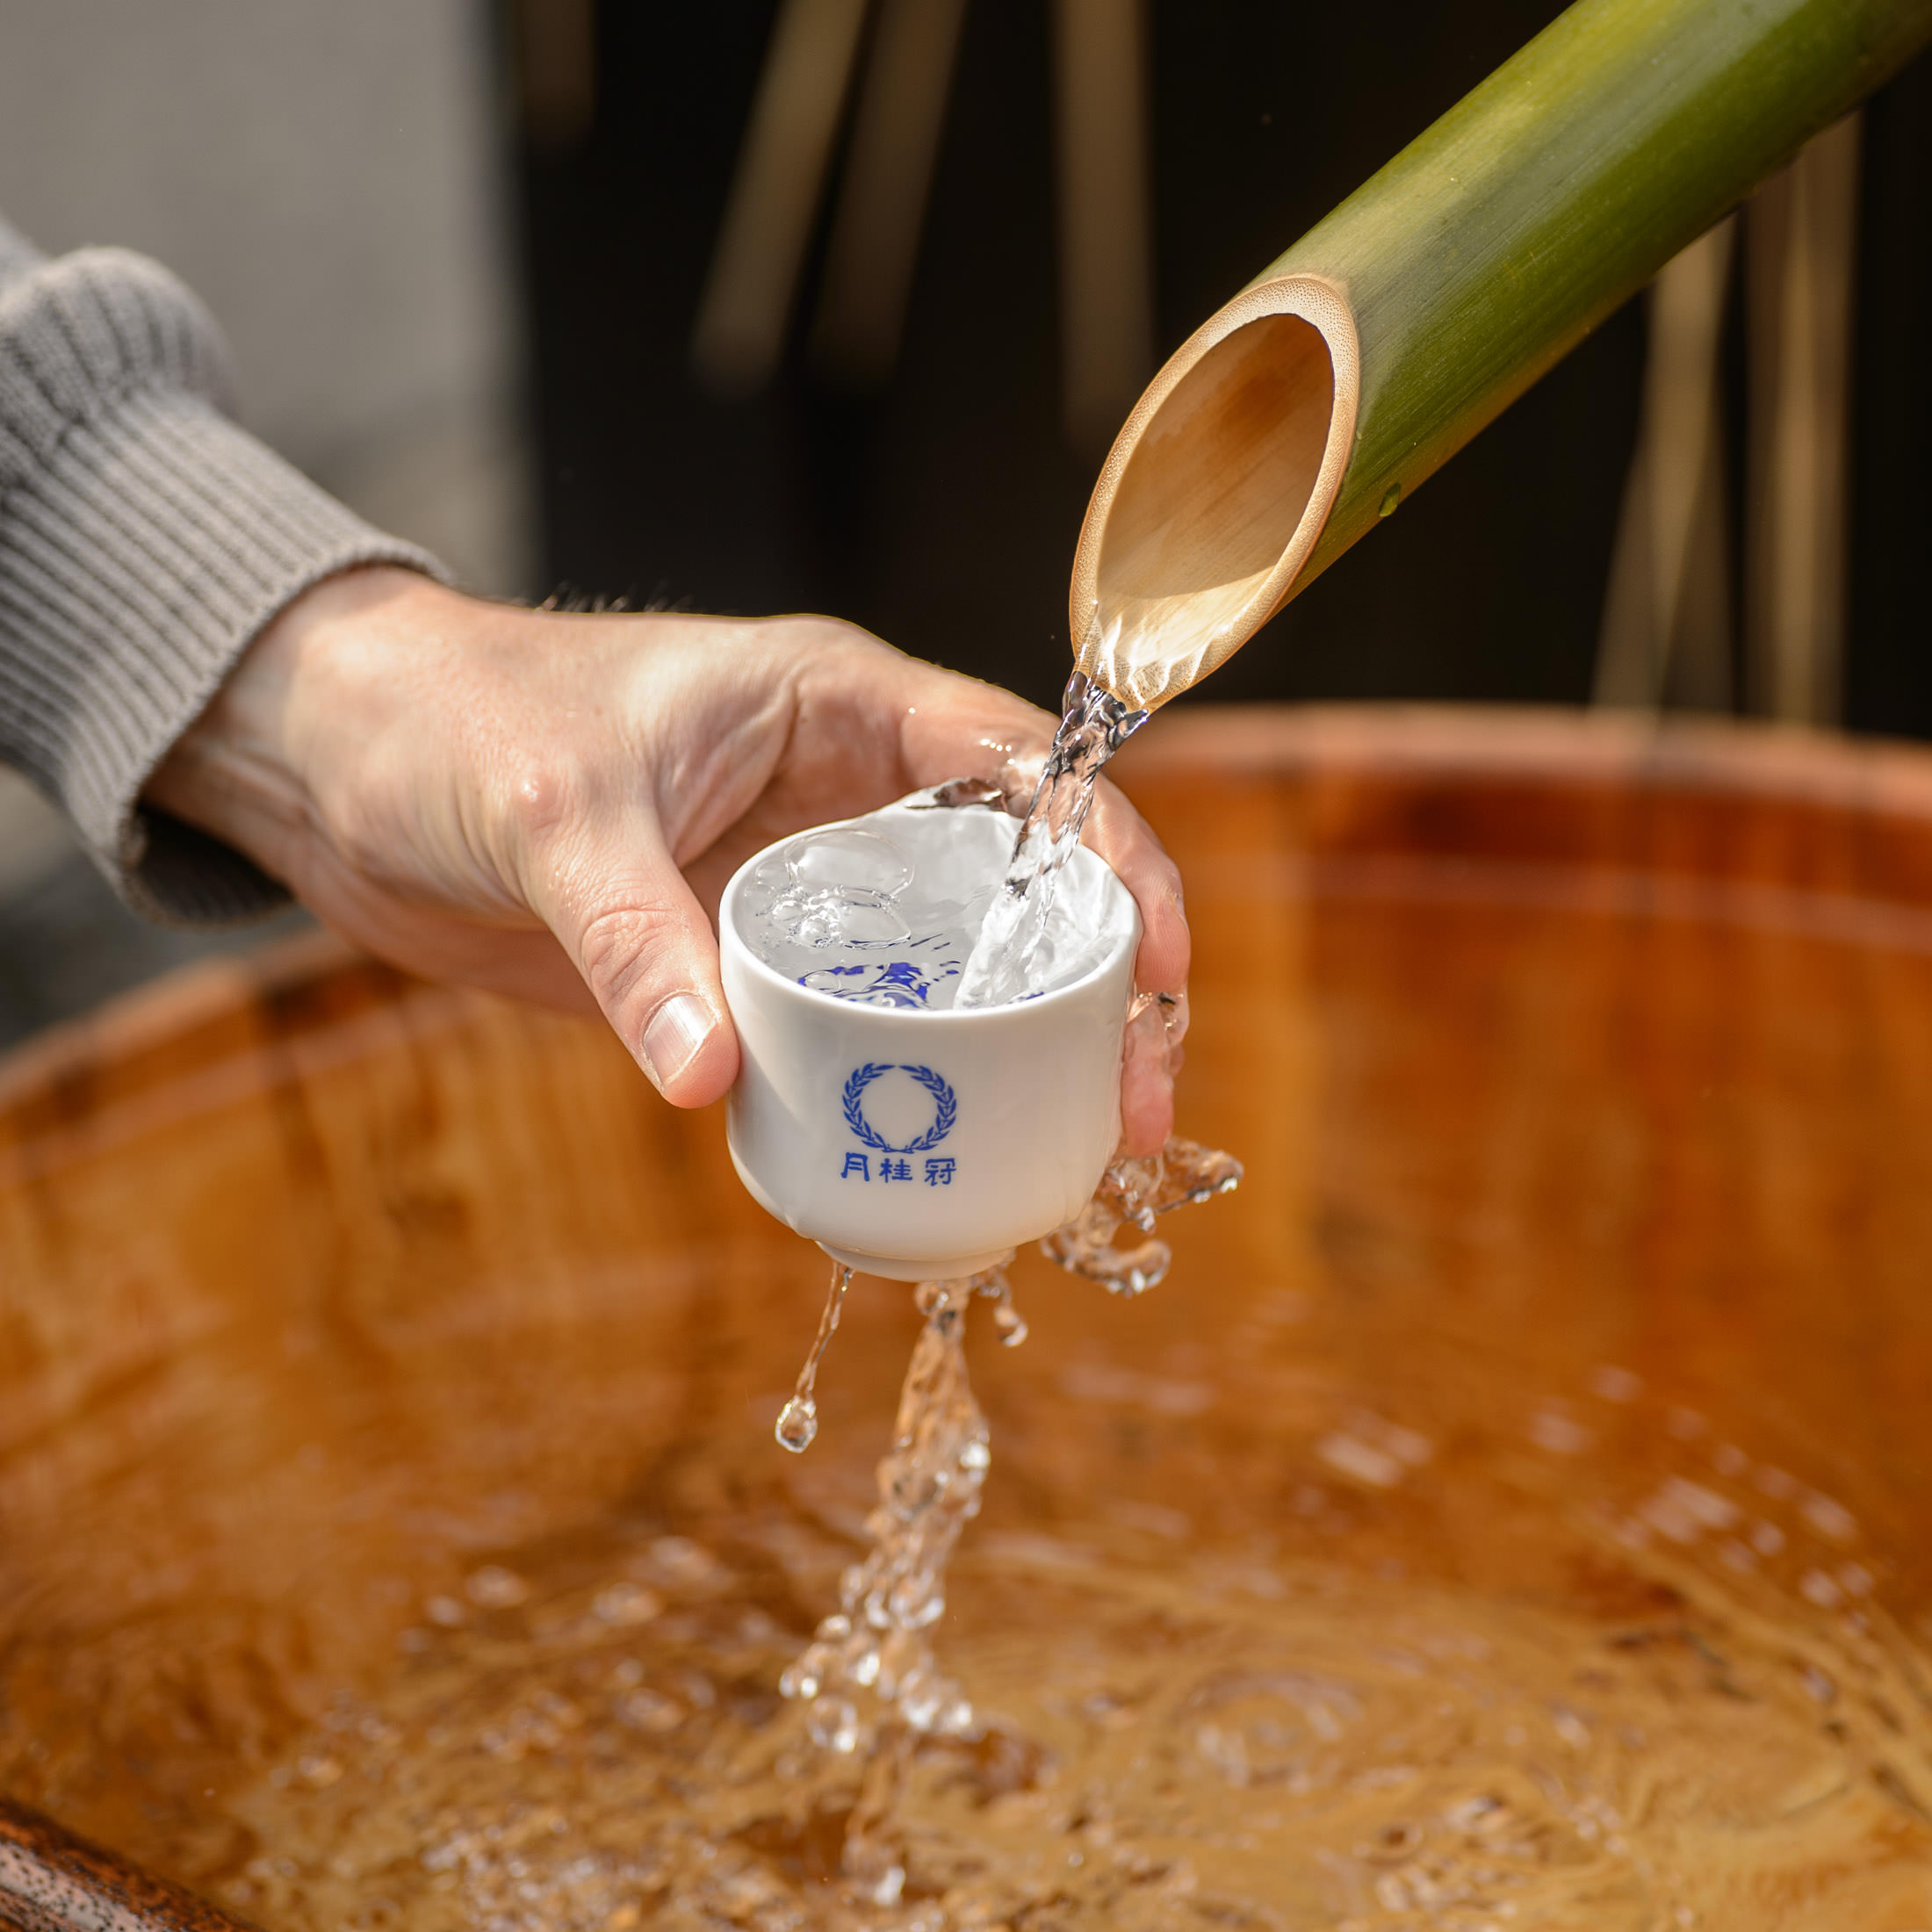 Jeffrey friedl 39 s blog sipping sake and seeing silly for Water in japanese